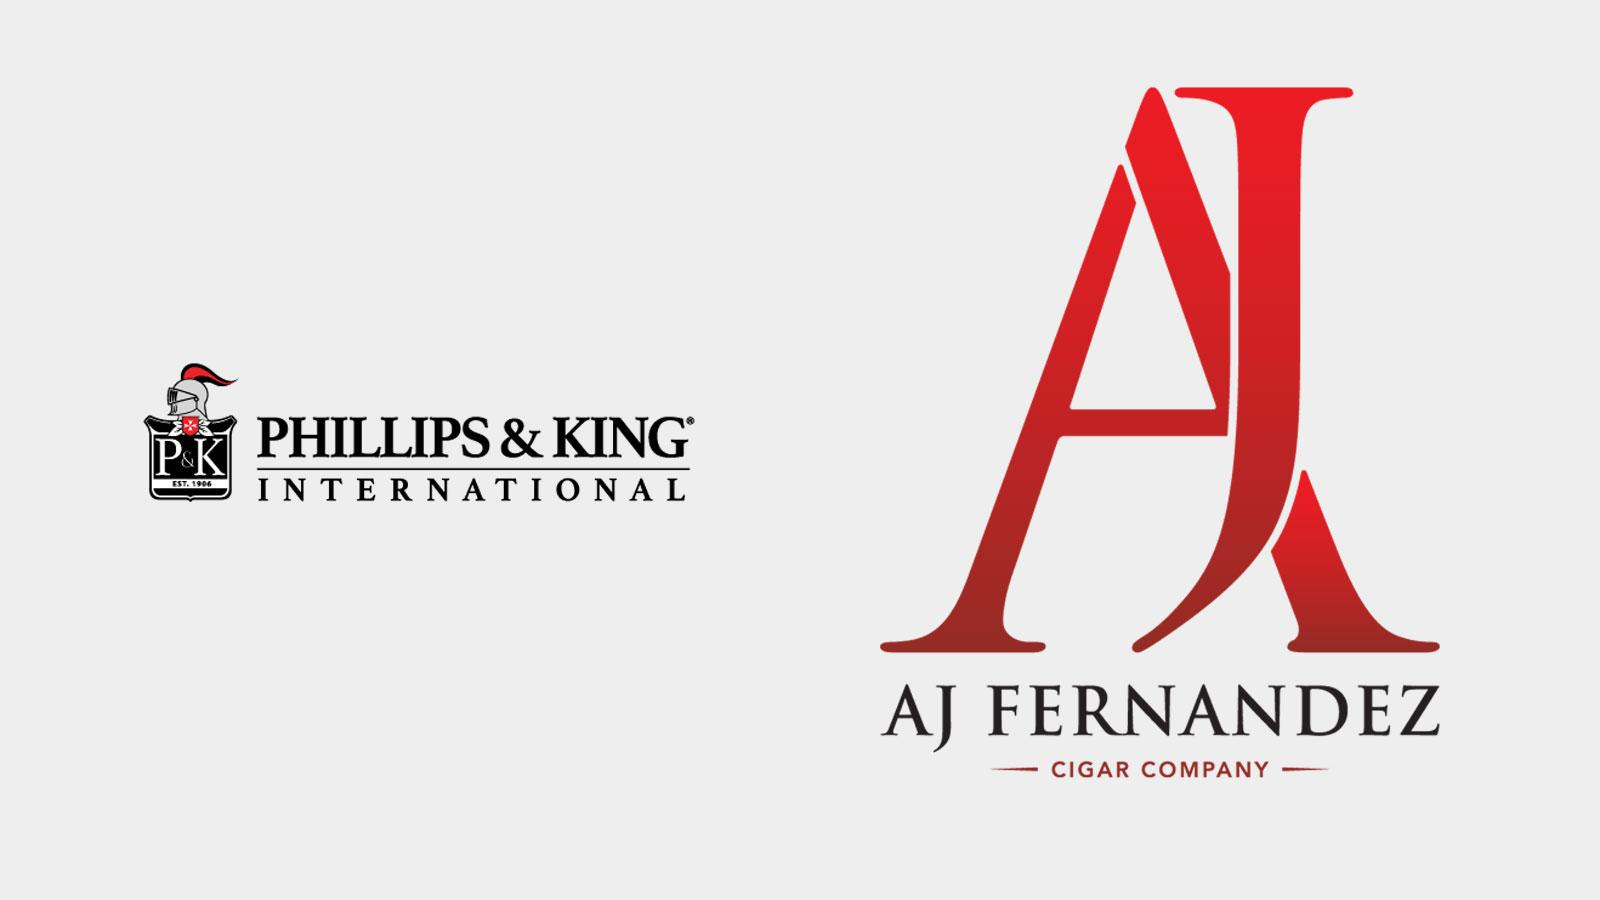 Phillips & King To Distribute AJ Fernandez Cigars In California